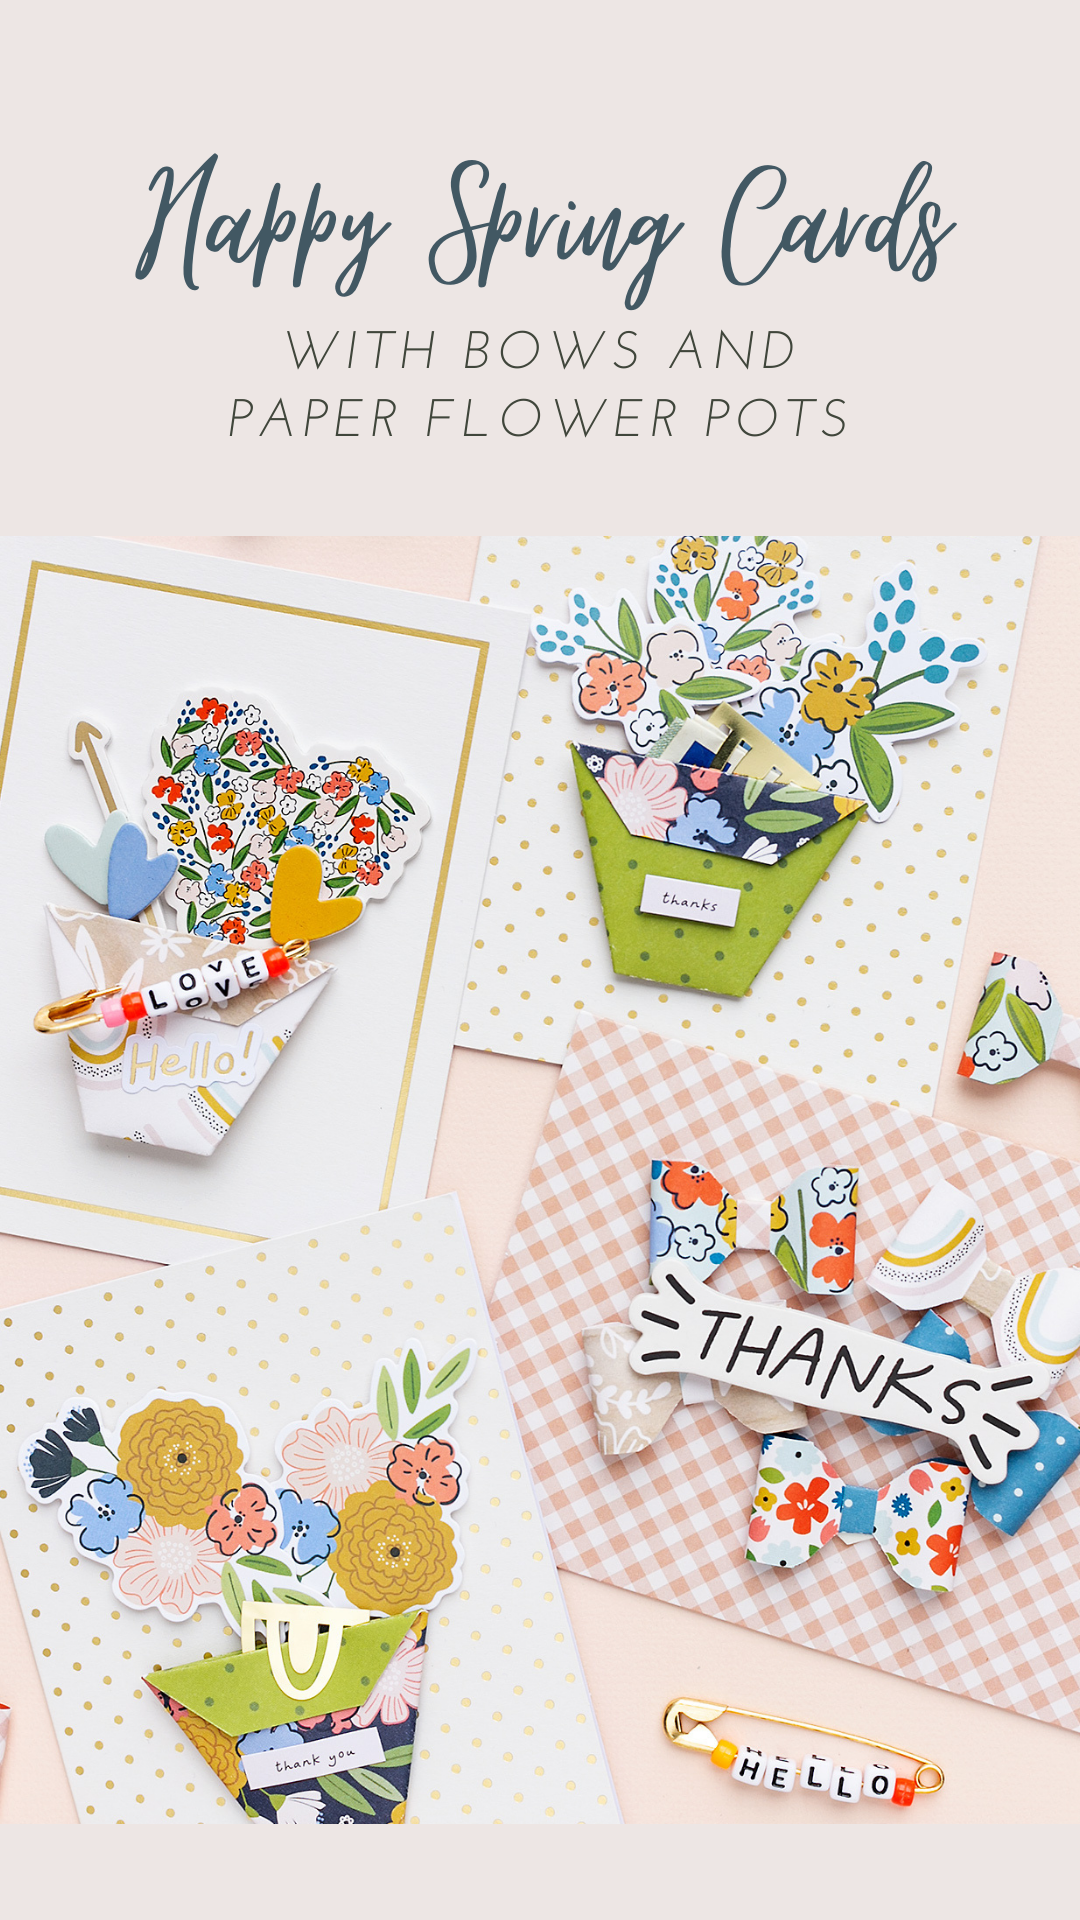 Happy Spring Cards with the papercrafting collection Reaching Out by Jen Hadfield